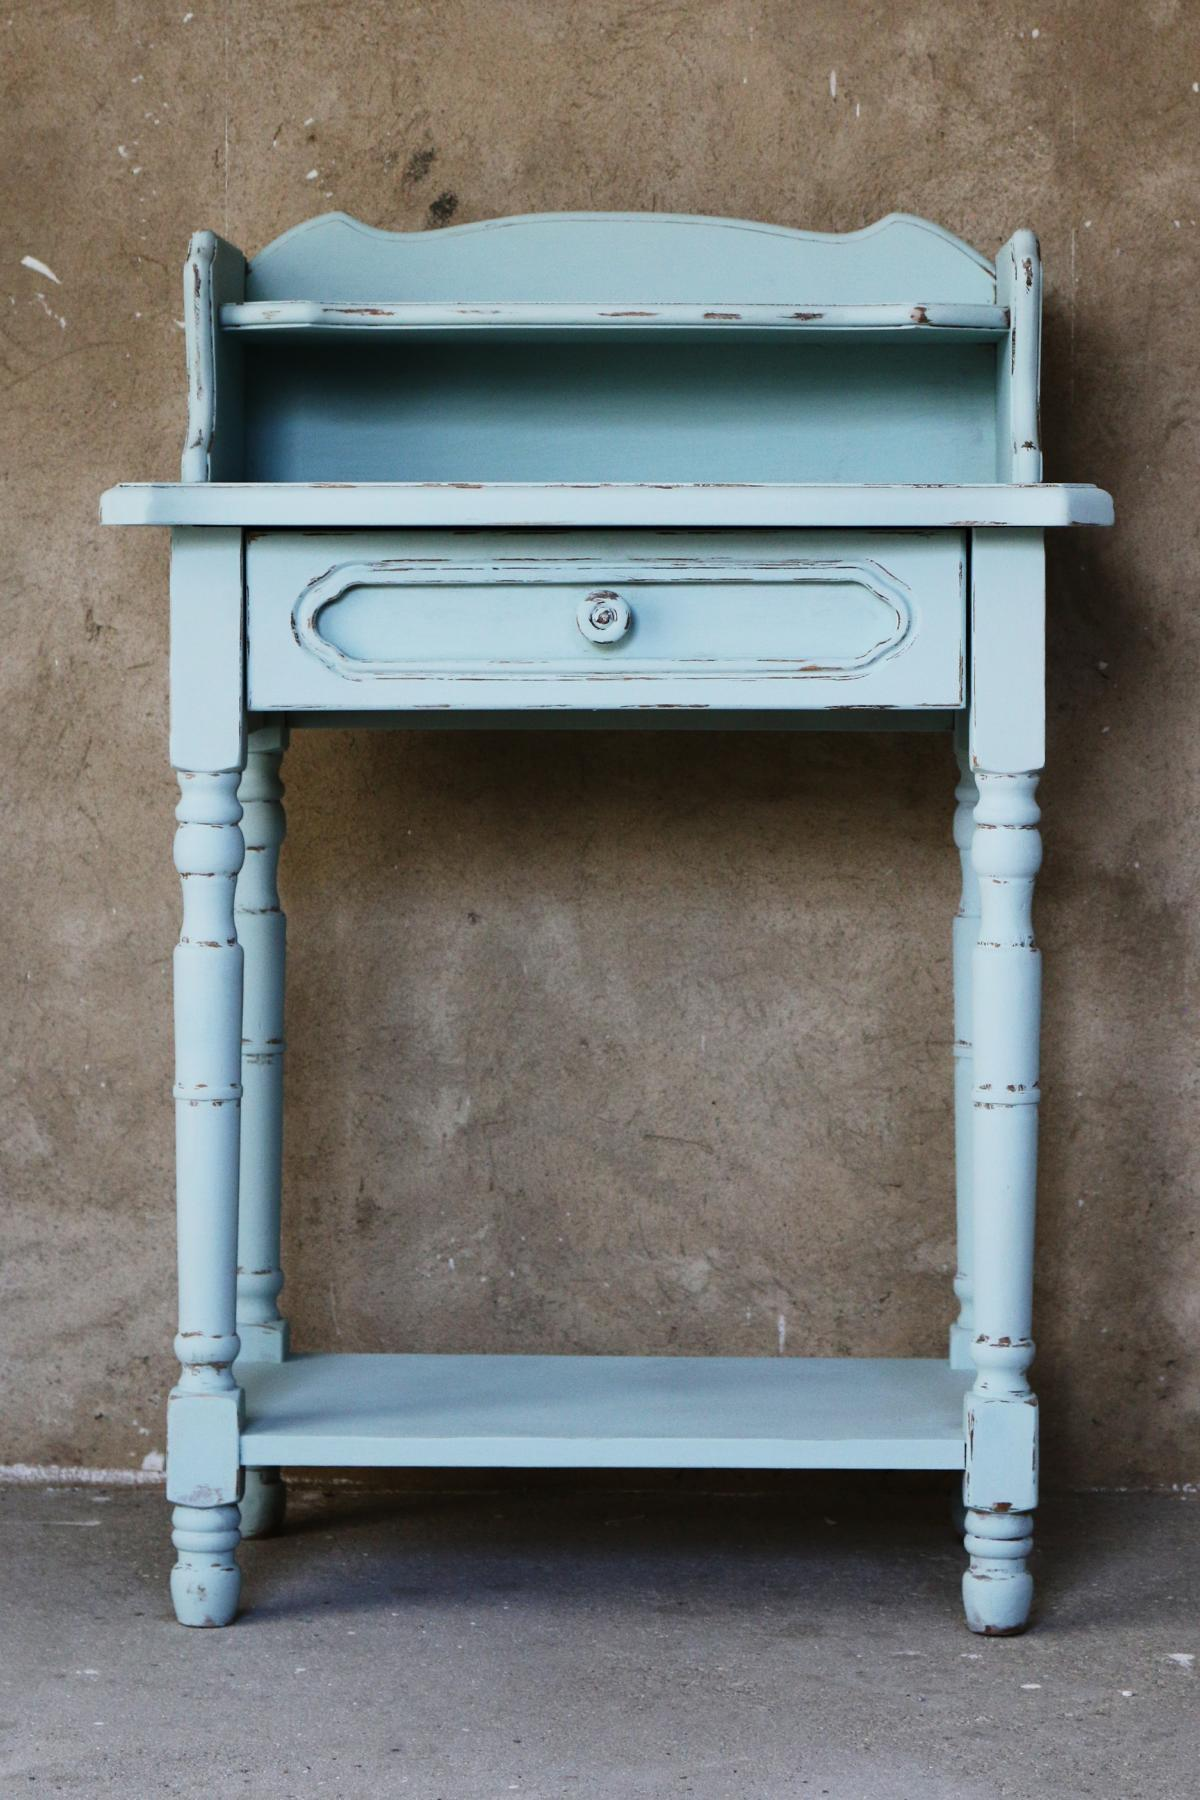 Welche Farbe Für Shabby Chic Möbel ᐅ Shabby Chic Möbel And Farben Techniken Ratgeber And Ideen 2019